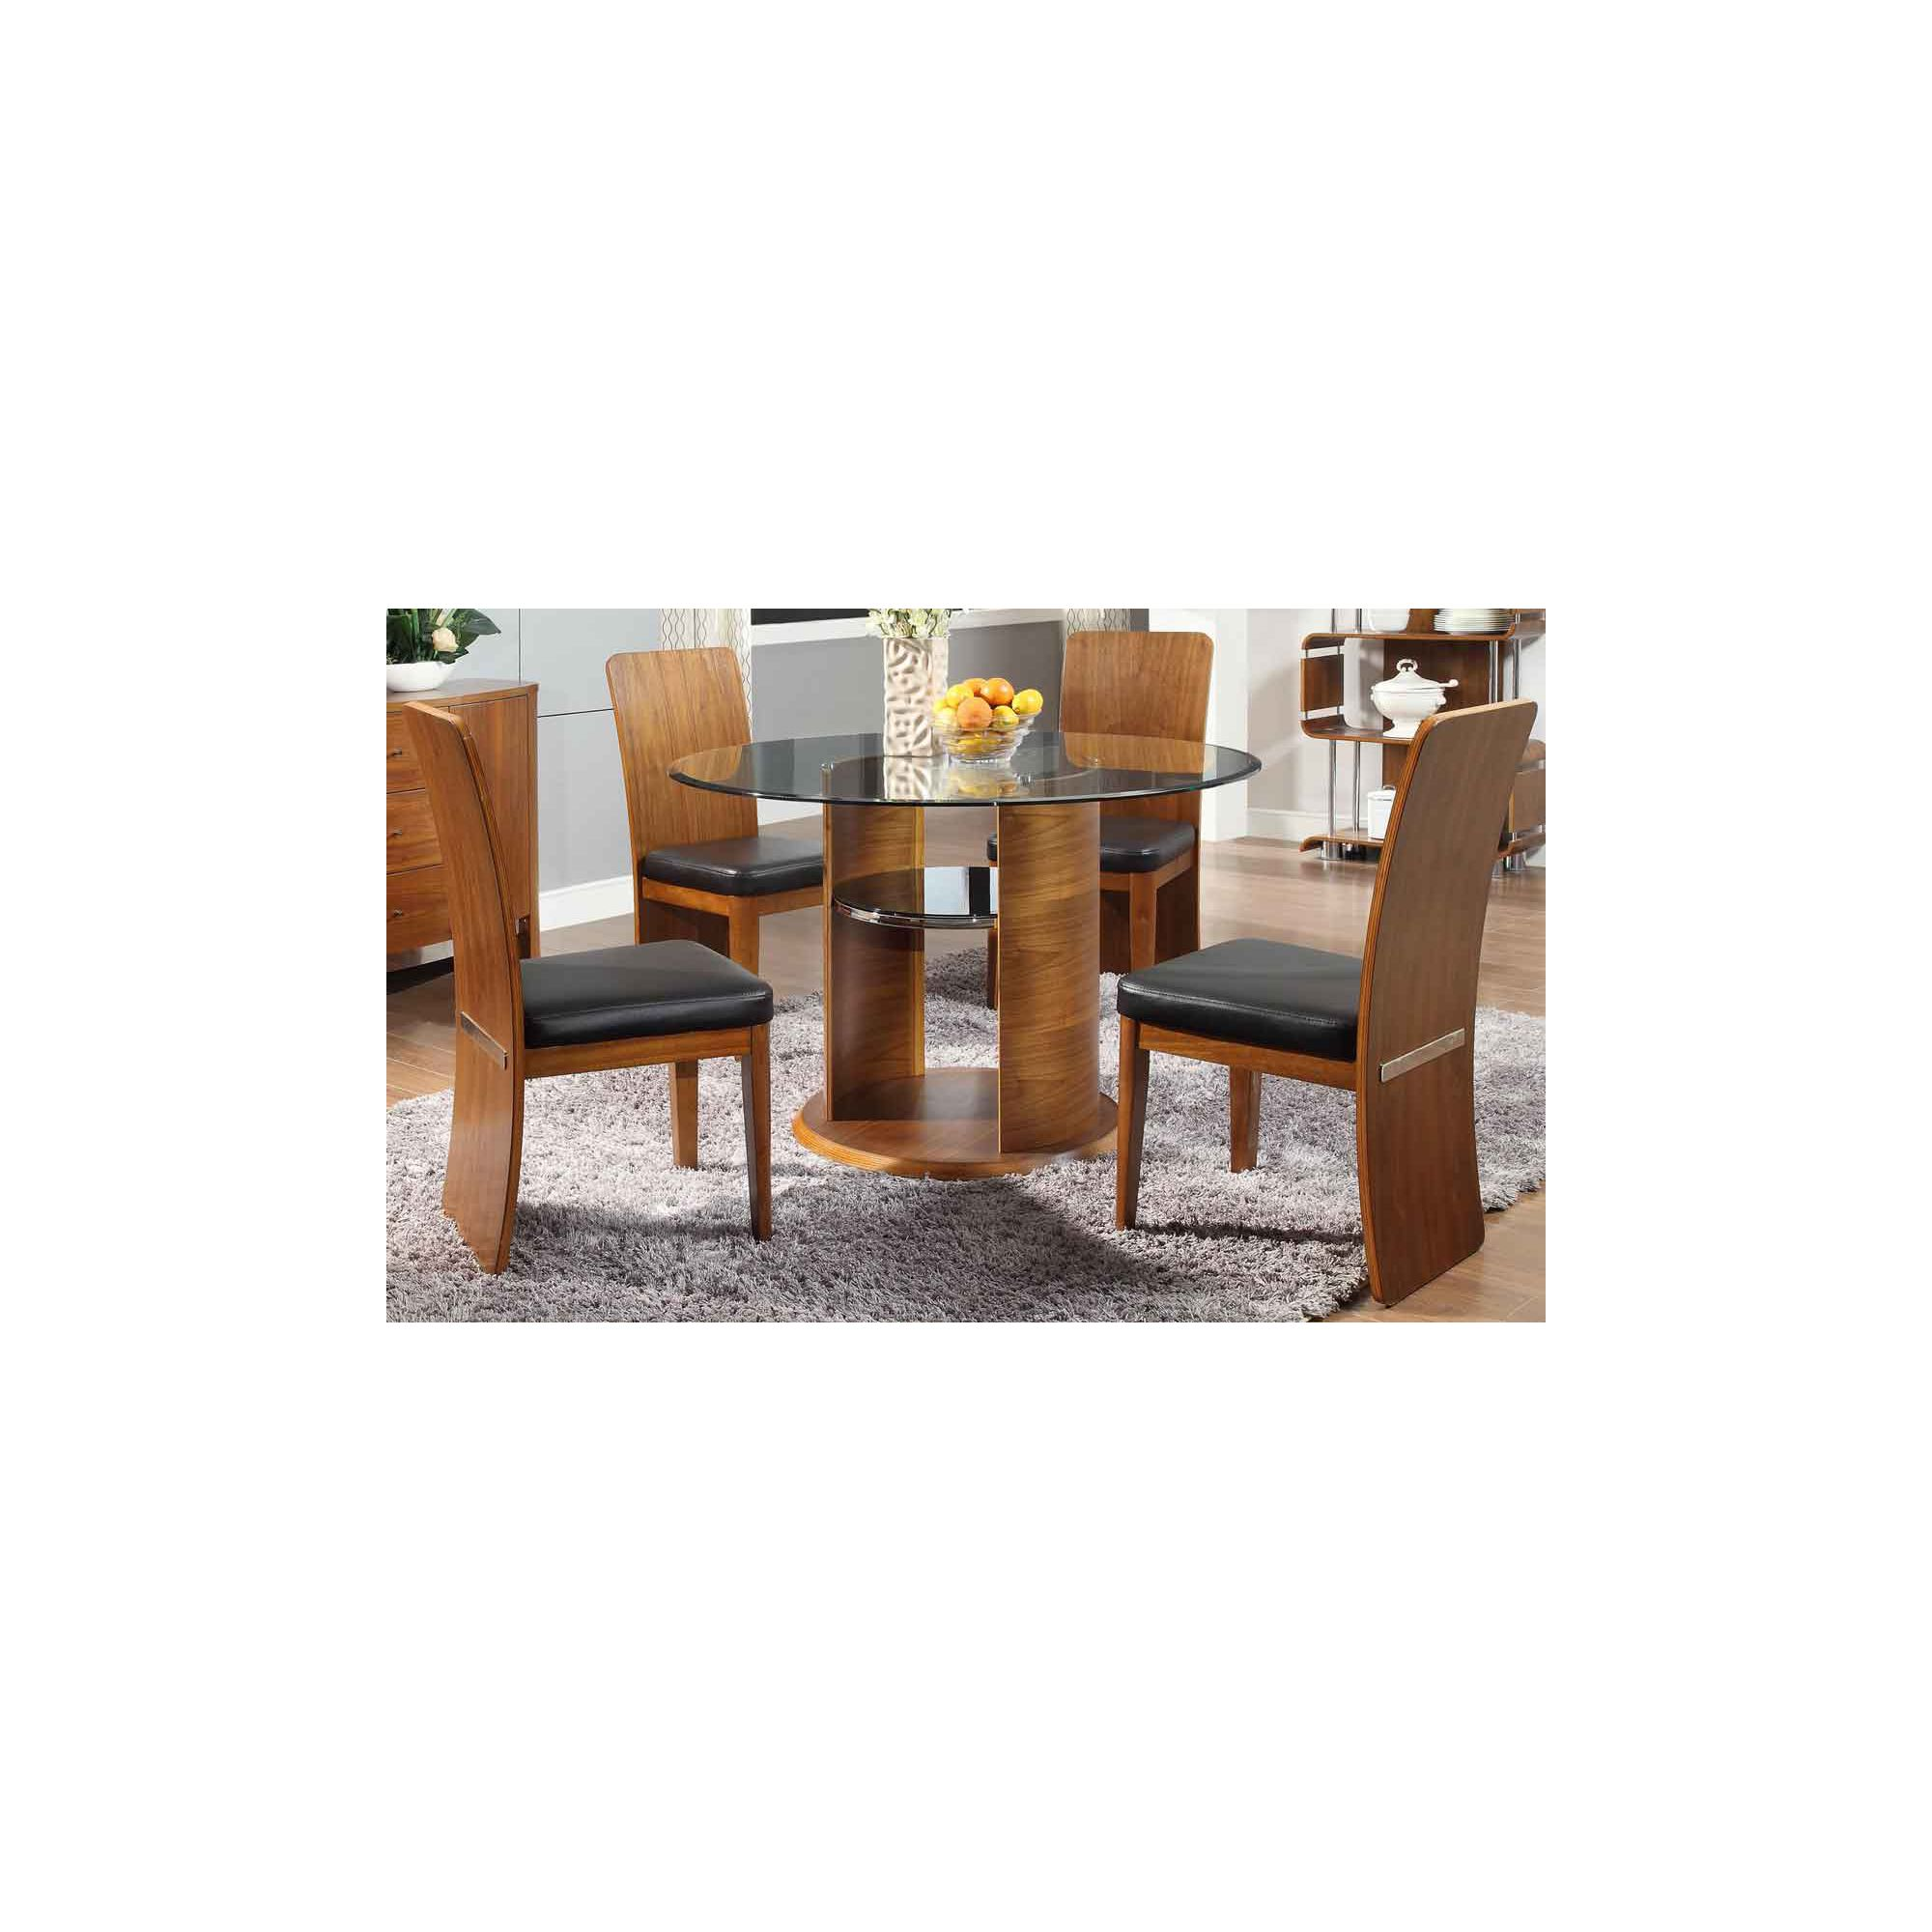 Other Jual JF603 Walnut Dining Table and 4 Chairs